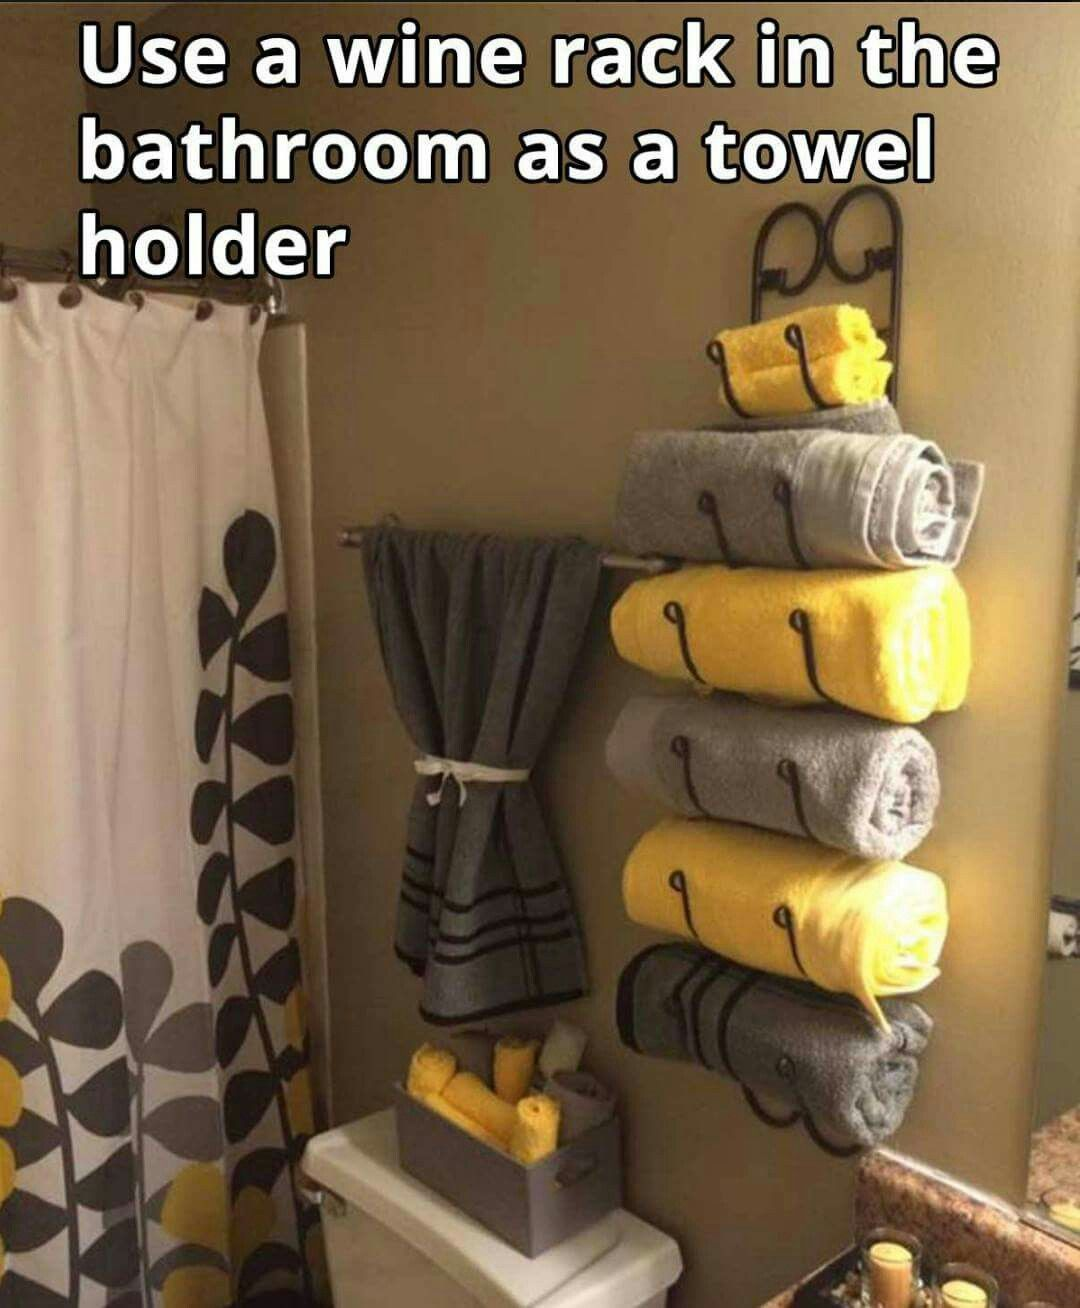 Awesome Idea To Use A Wine Rack As A Towel Rack In The Bathroom Or In Your Sewing Space Could Hold Rolls Of Fusibles And Stabilizers